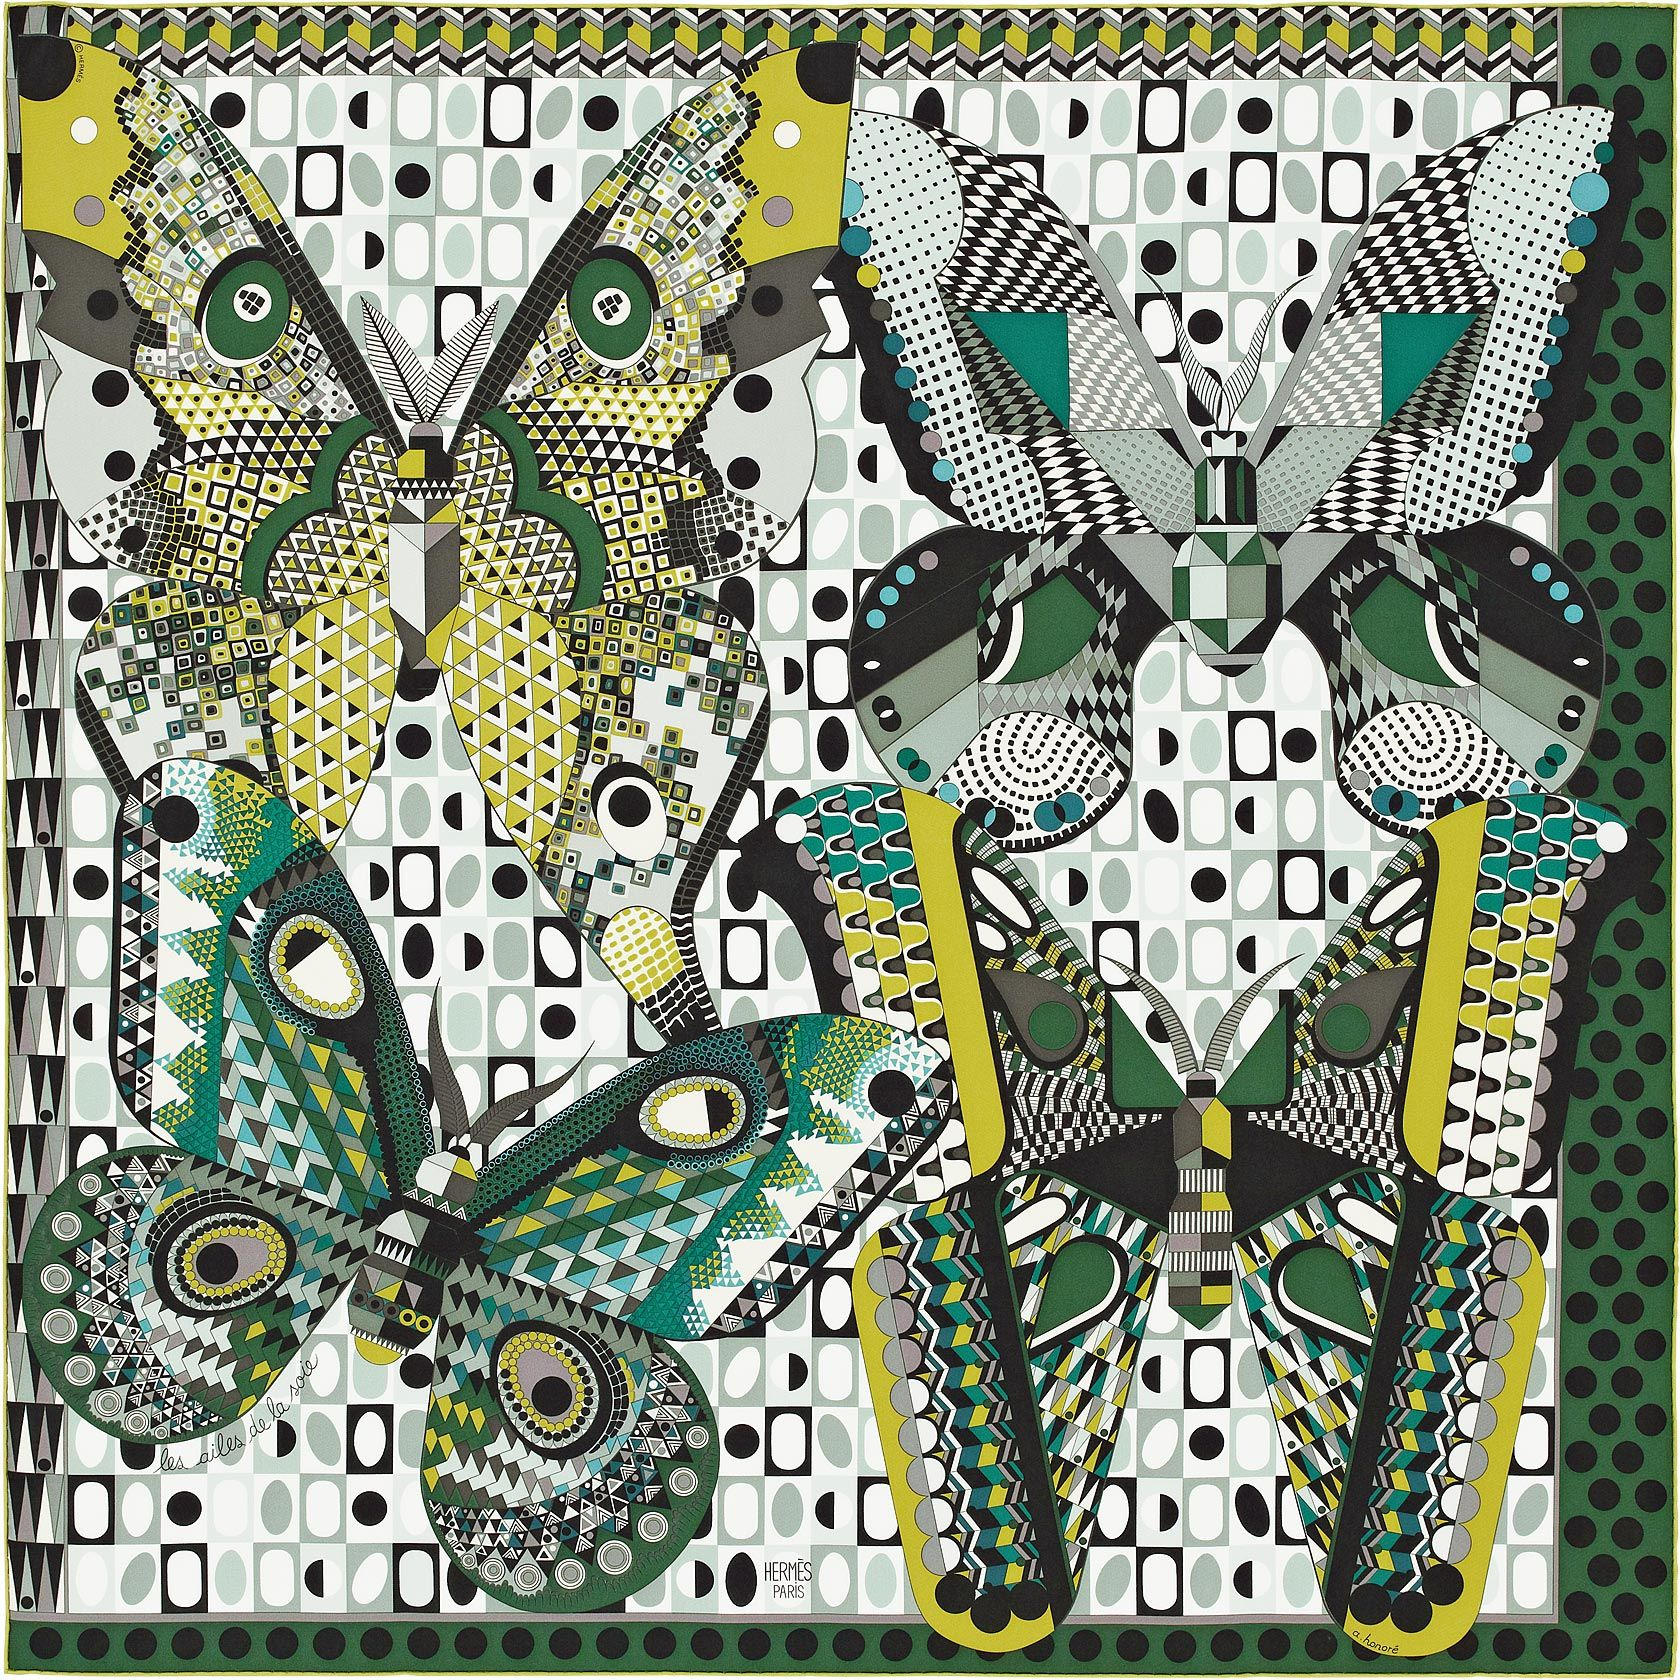 Carré 90 x 90 cm Hermès   Les Ailes de la Soie by Aline Honoré DESIGN  HISTORY   The butterfly is without doubt the most enduring symbol of  metamorphosis. 2b2d377b95e